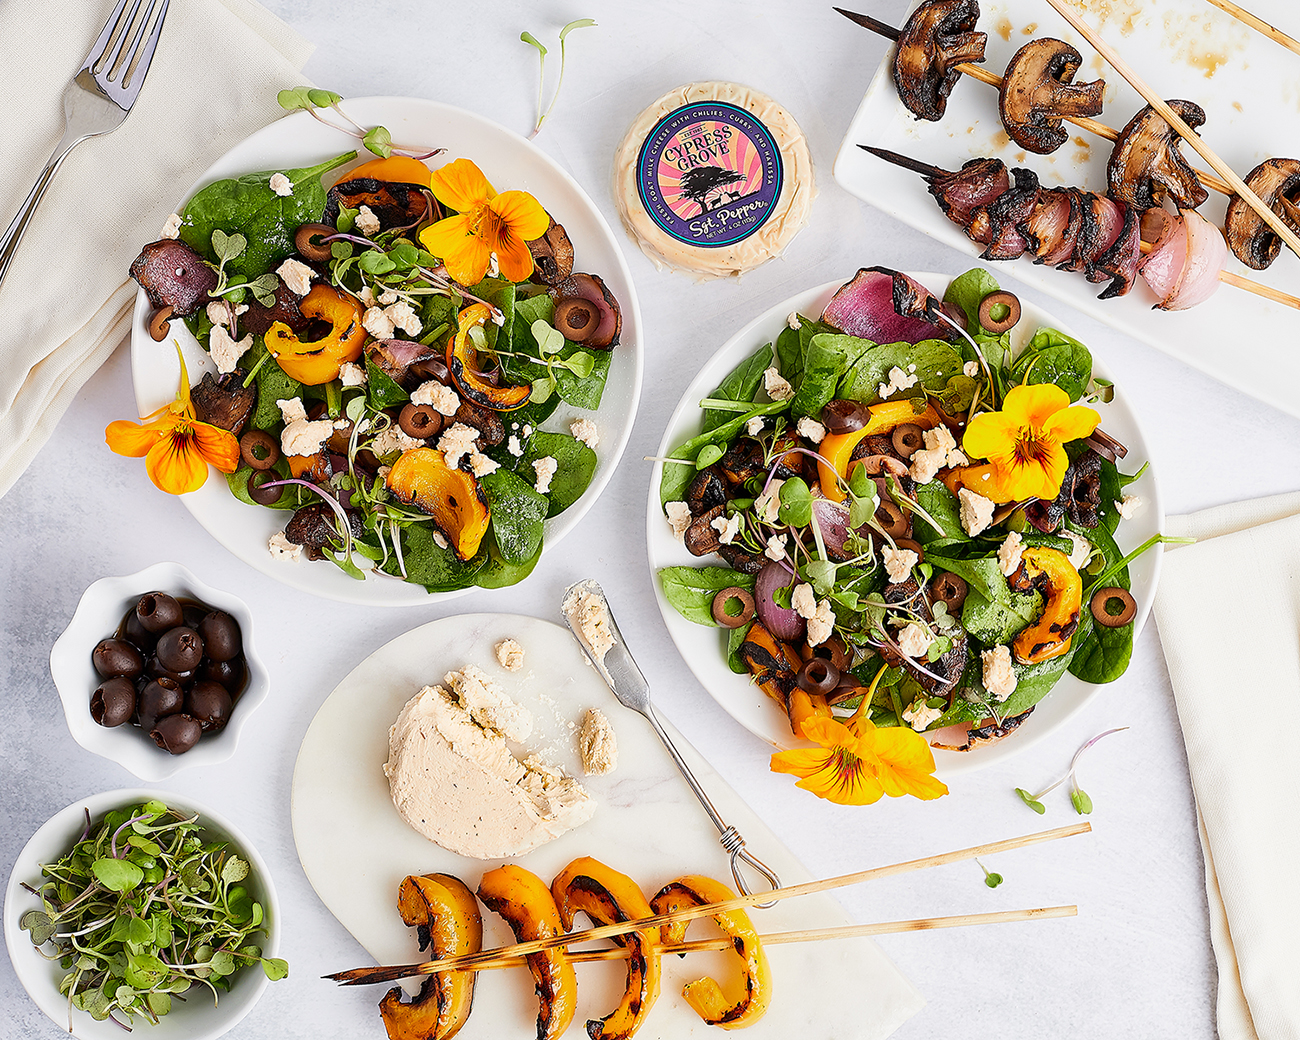 Sgt. Pepper® Grilled Vegetable Salad